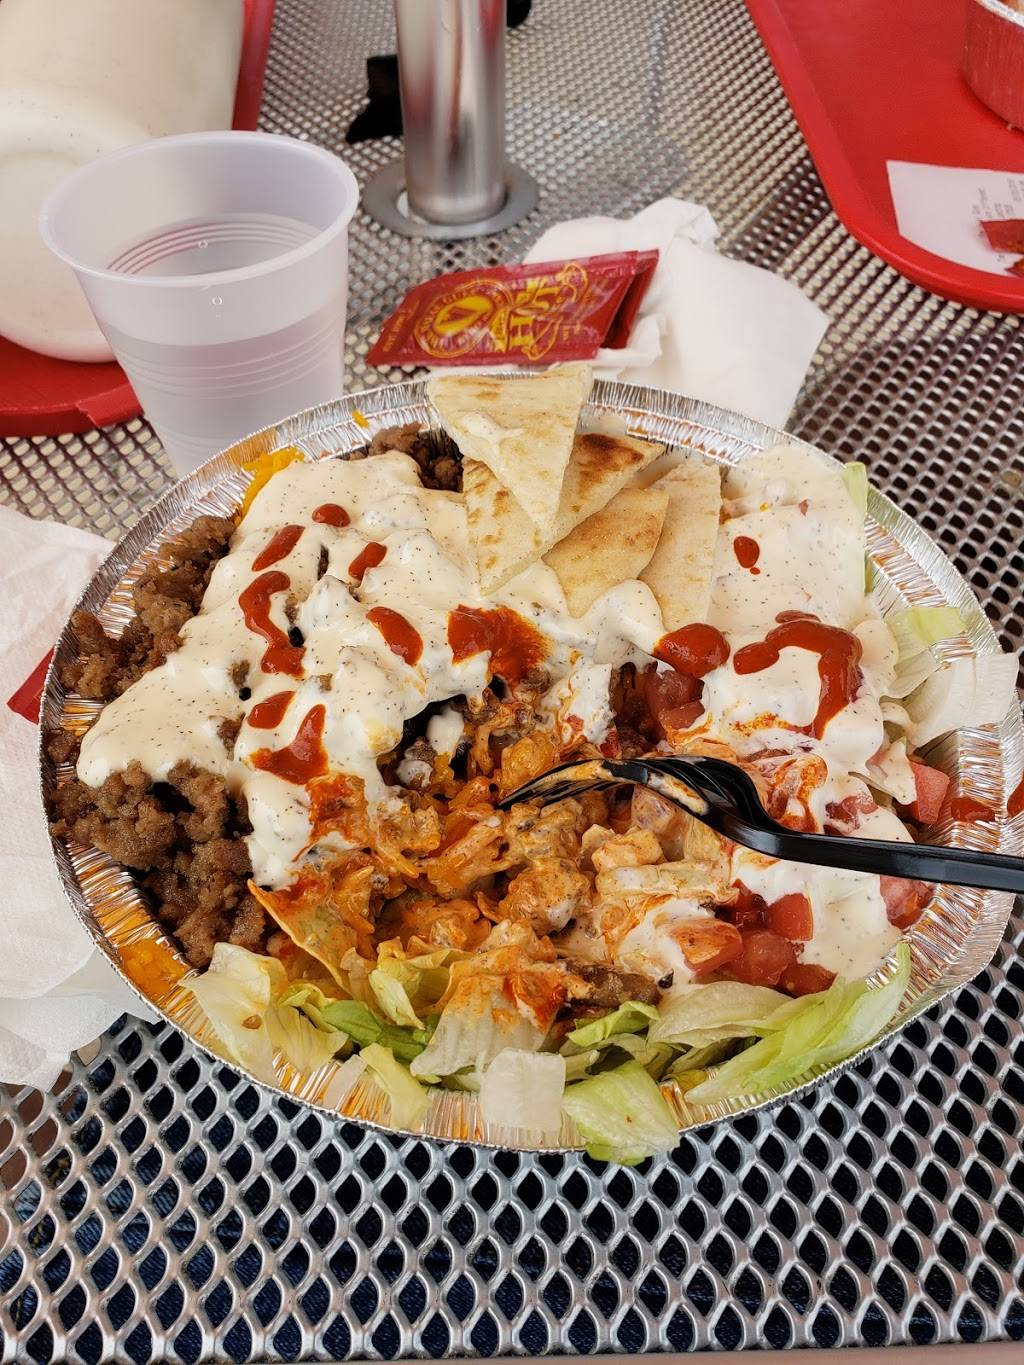 The Halal Guys | restaurant | 4 Teterboro Landing Drive, Teterboro, NJ 07608, USA | 2012882525 OR +1 201-288-2525